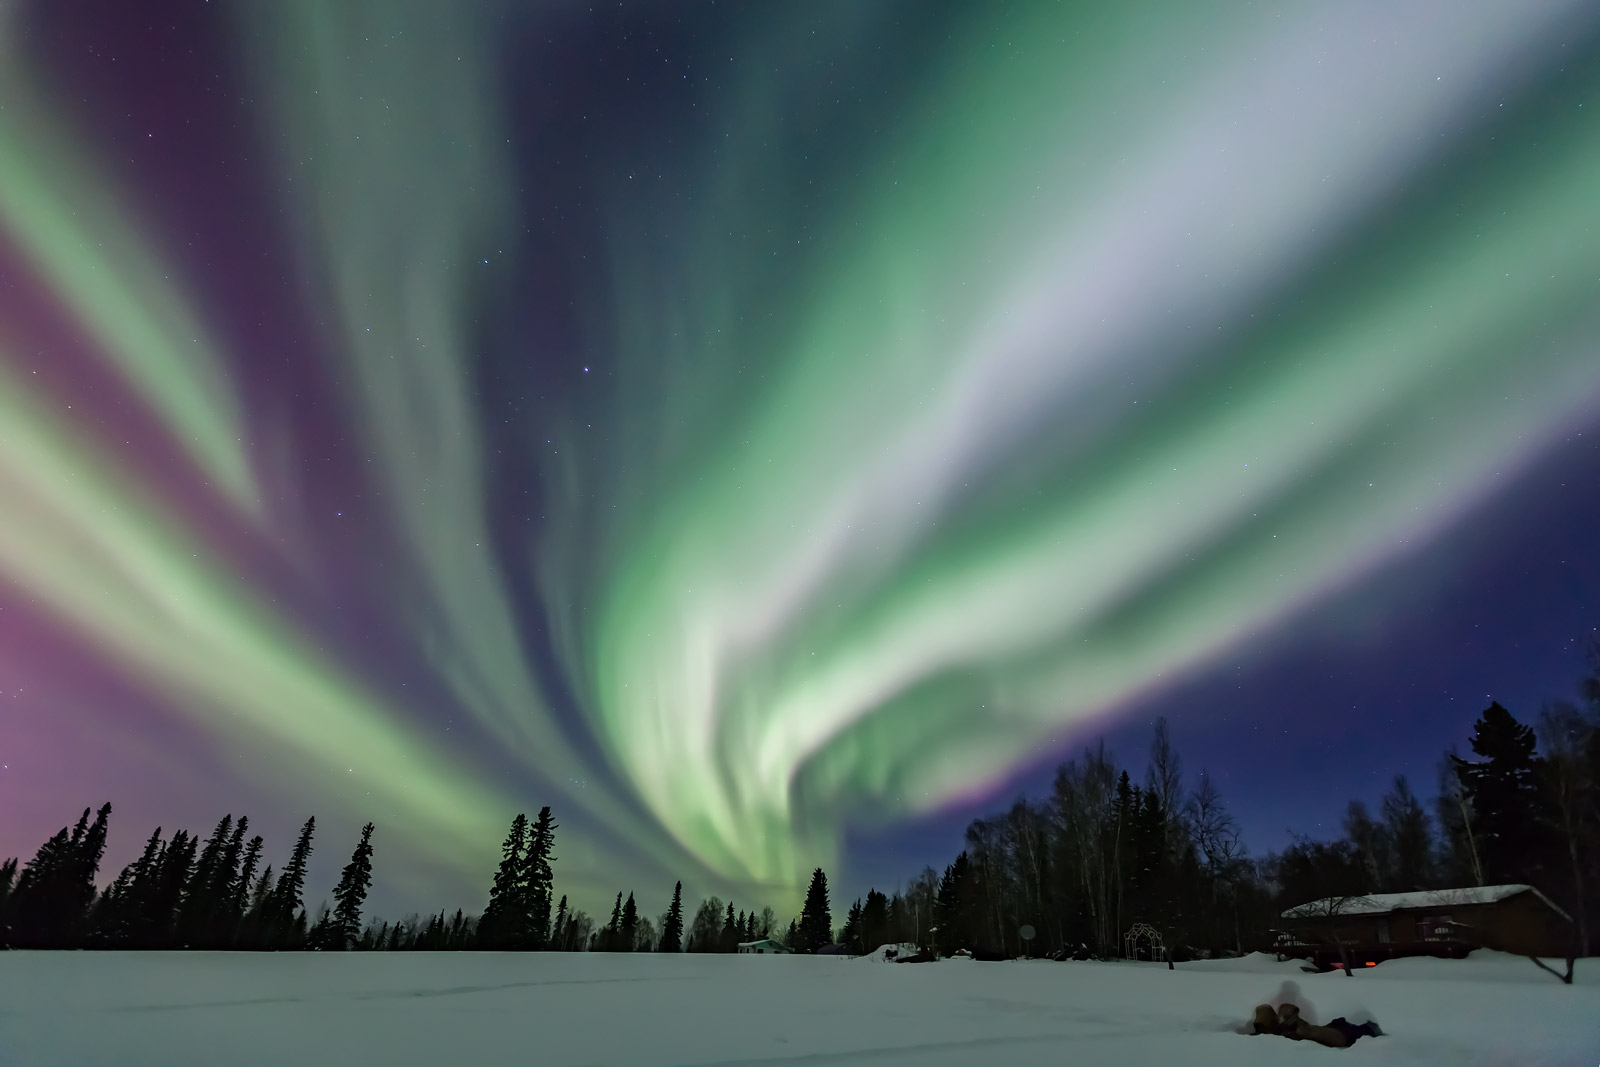 A Limited Edition, Fine Art photograph of a gigantic aurora providing a bright night light over a snow covered field and cabin...